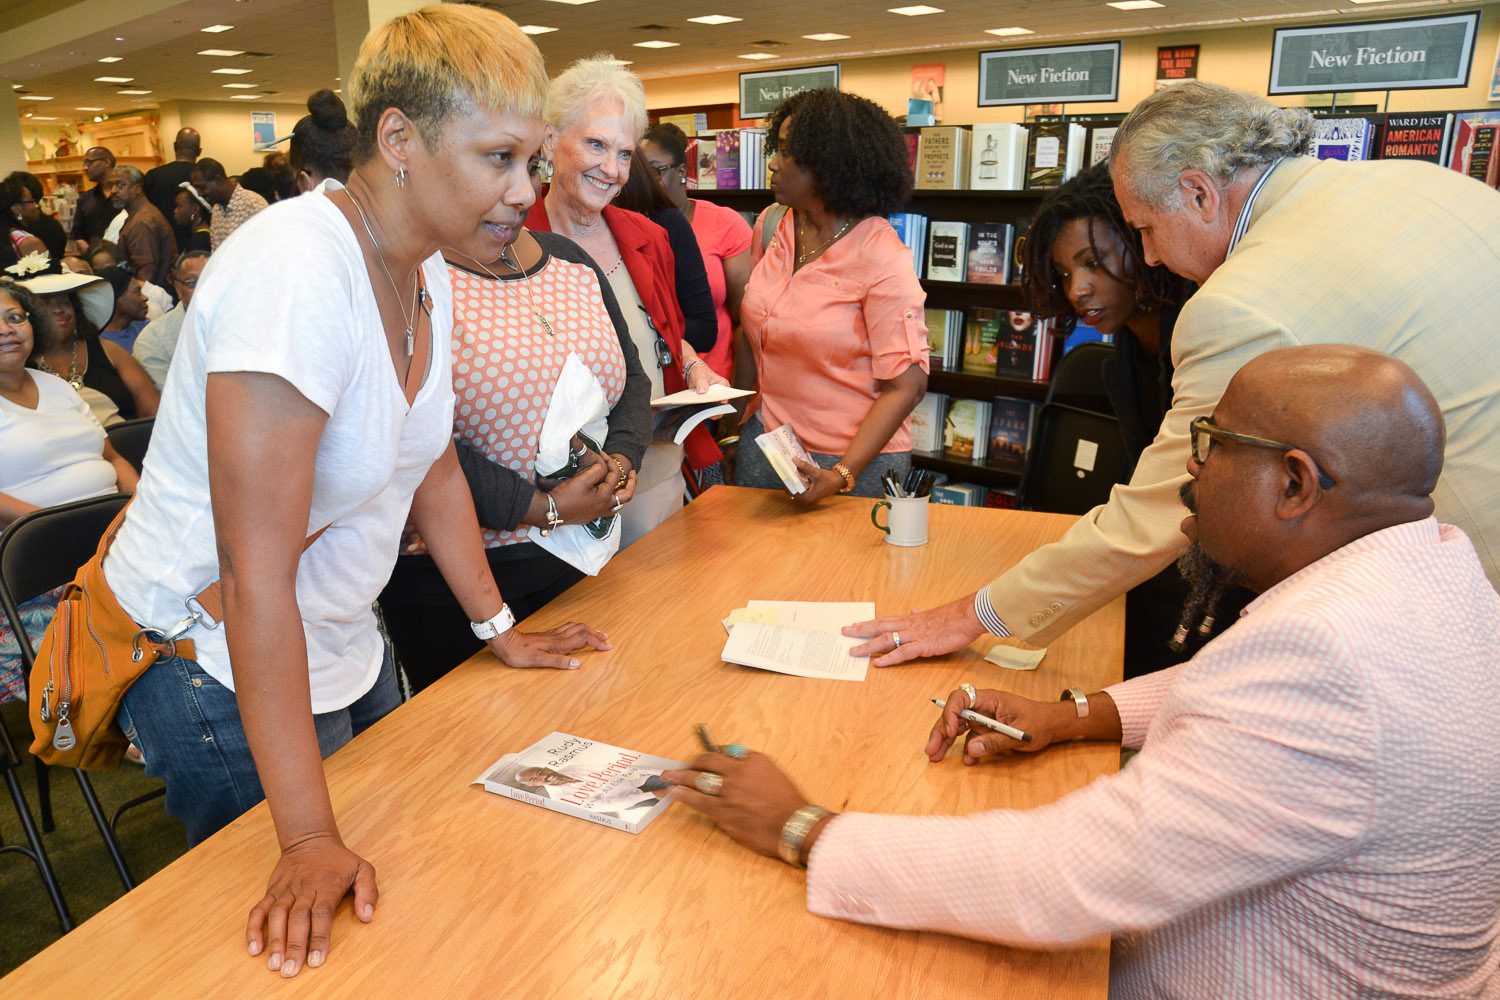 Paster Rudy book signing -0150.jpg